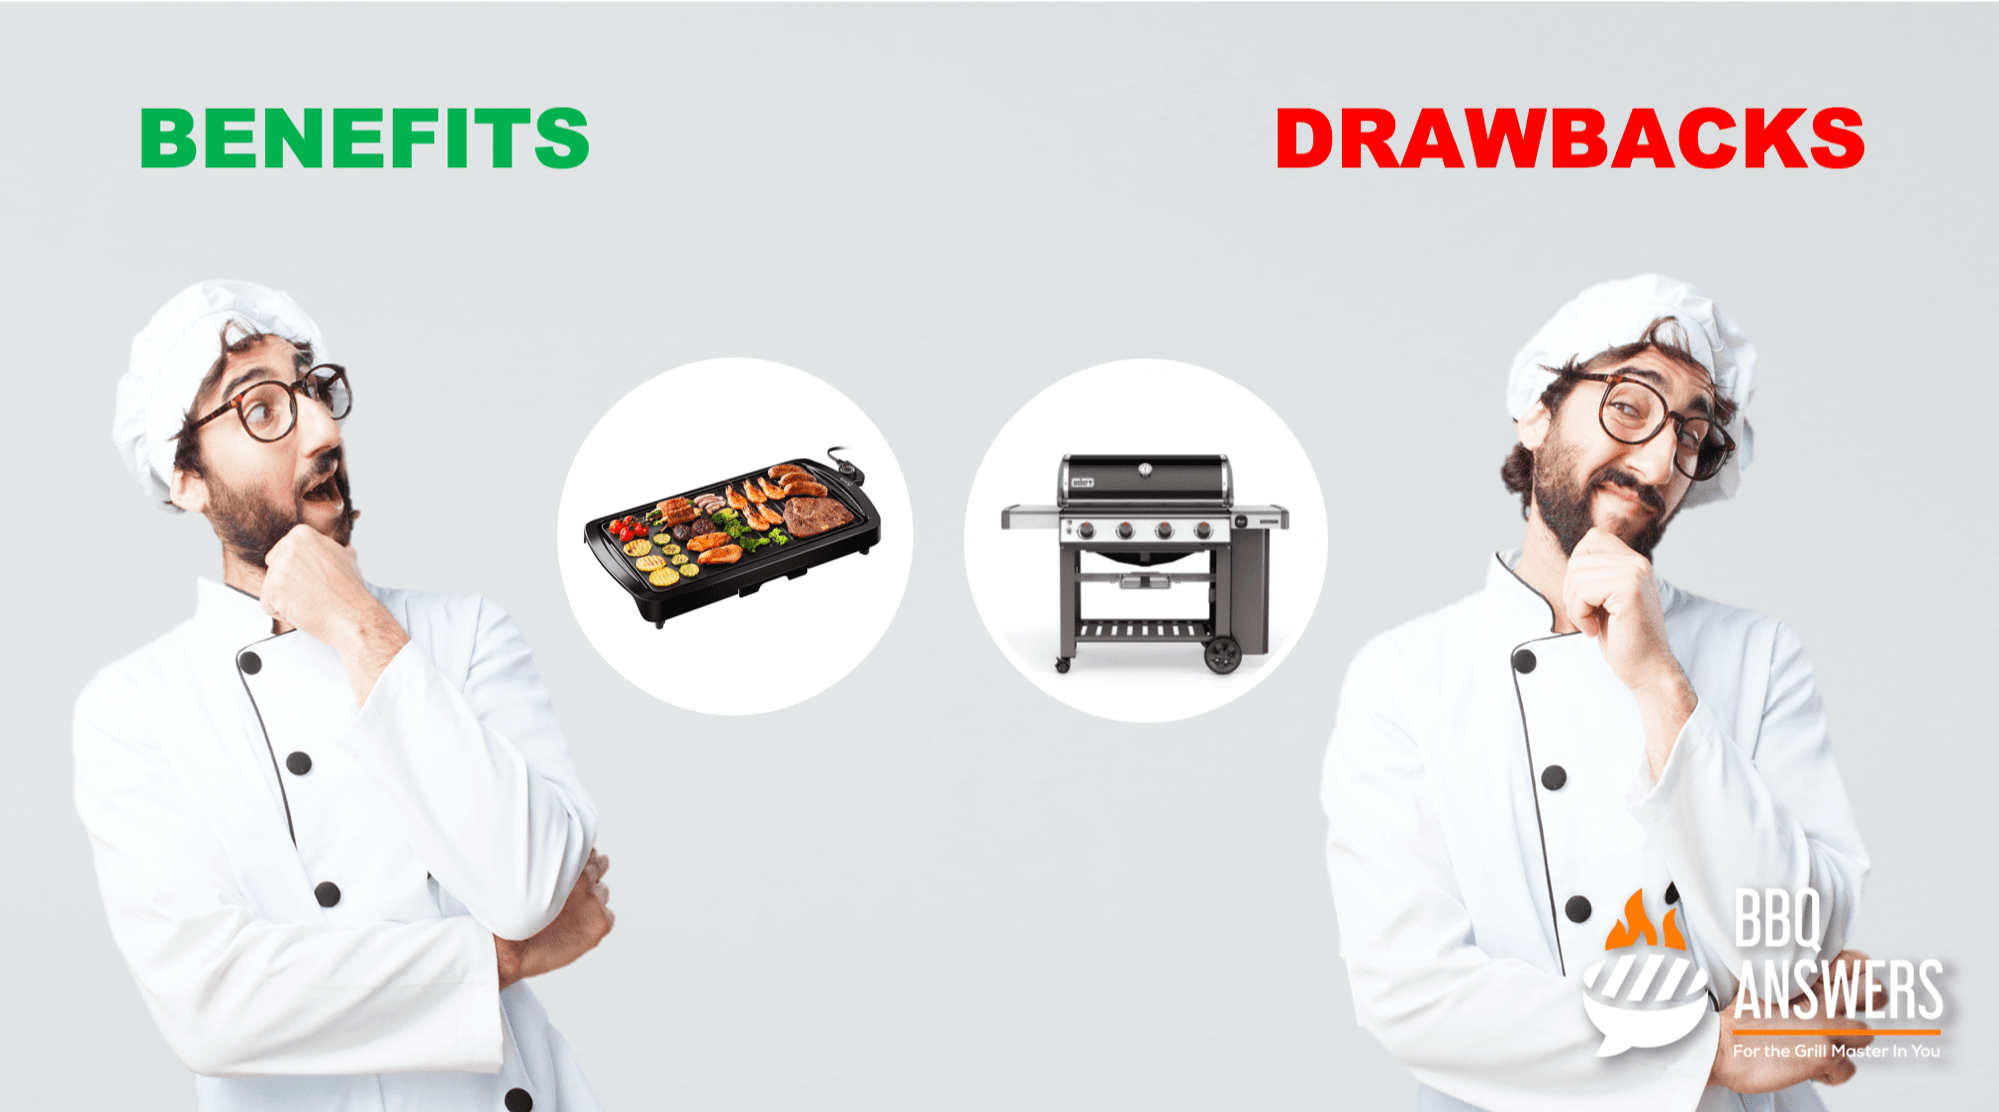 Benefits and Drawbacks of Electric grill and Gas Grill   BBQanswers